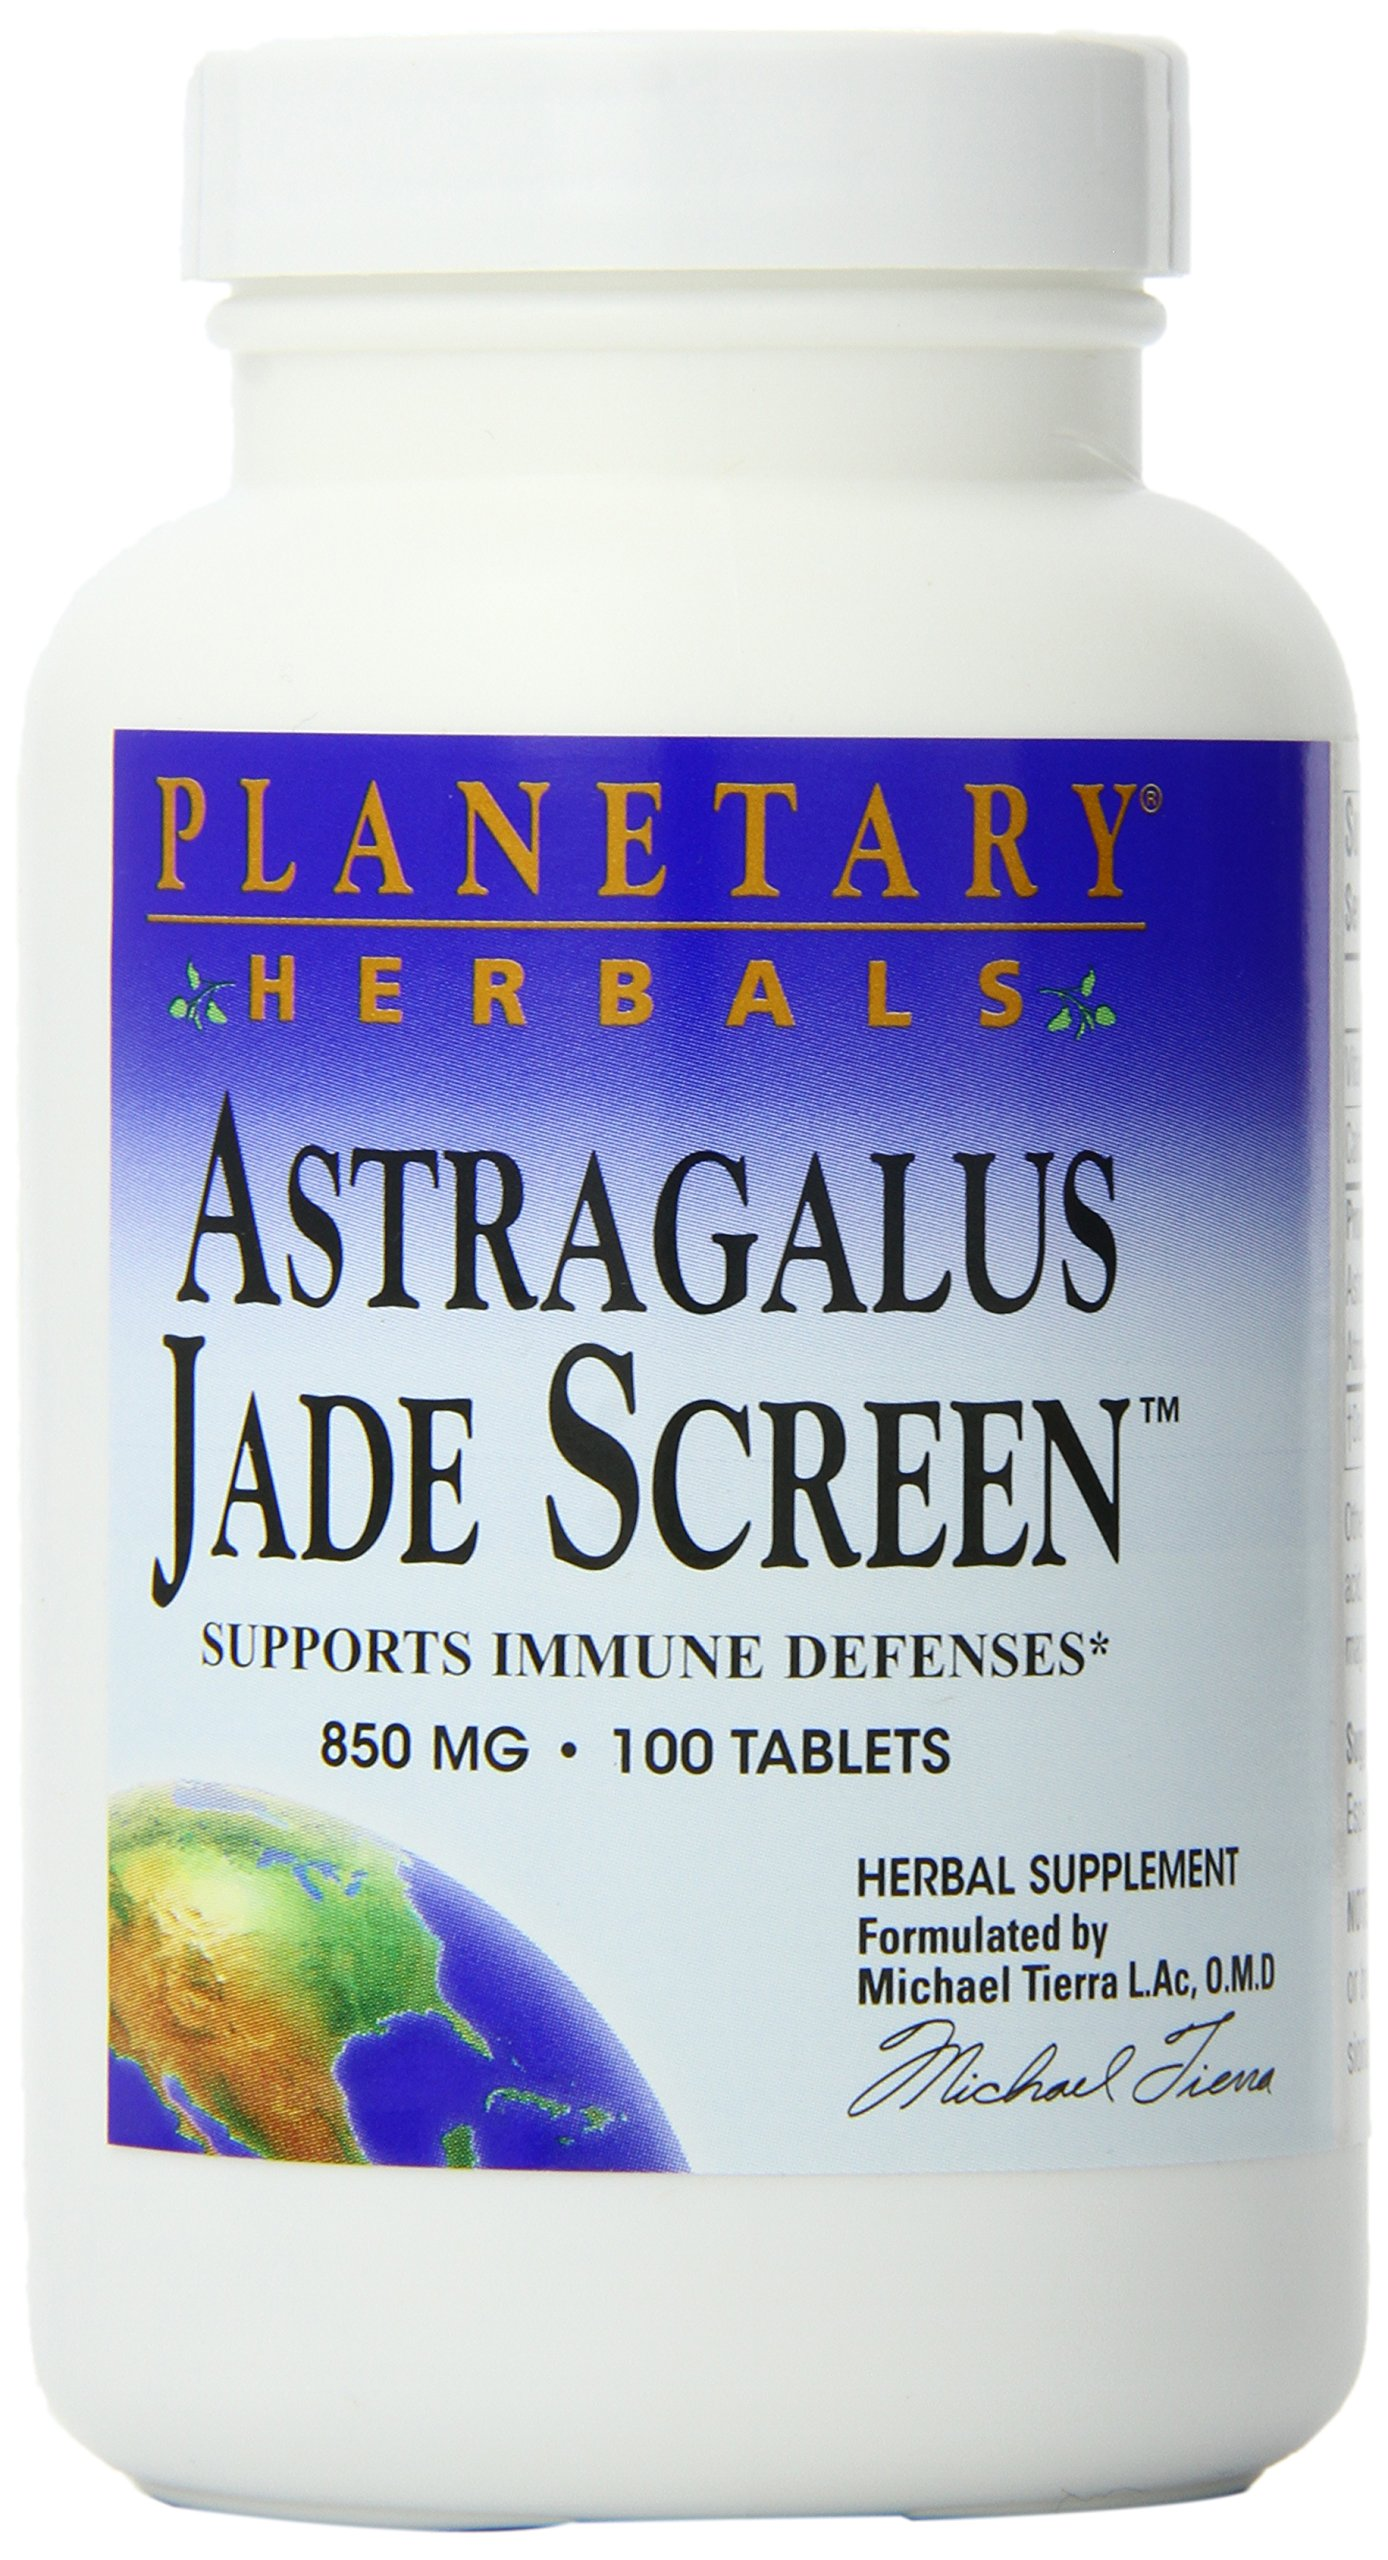 Planetary Herbals Astragalus Jade Screen 850 mg, Supports Immune Defenses, 100 Tablets (Pack of 2)